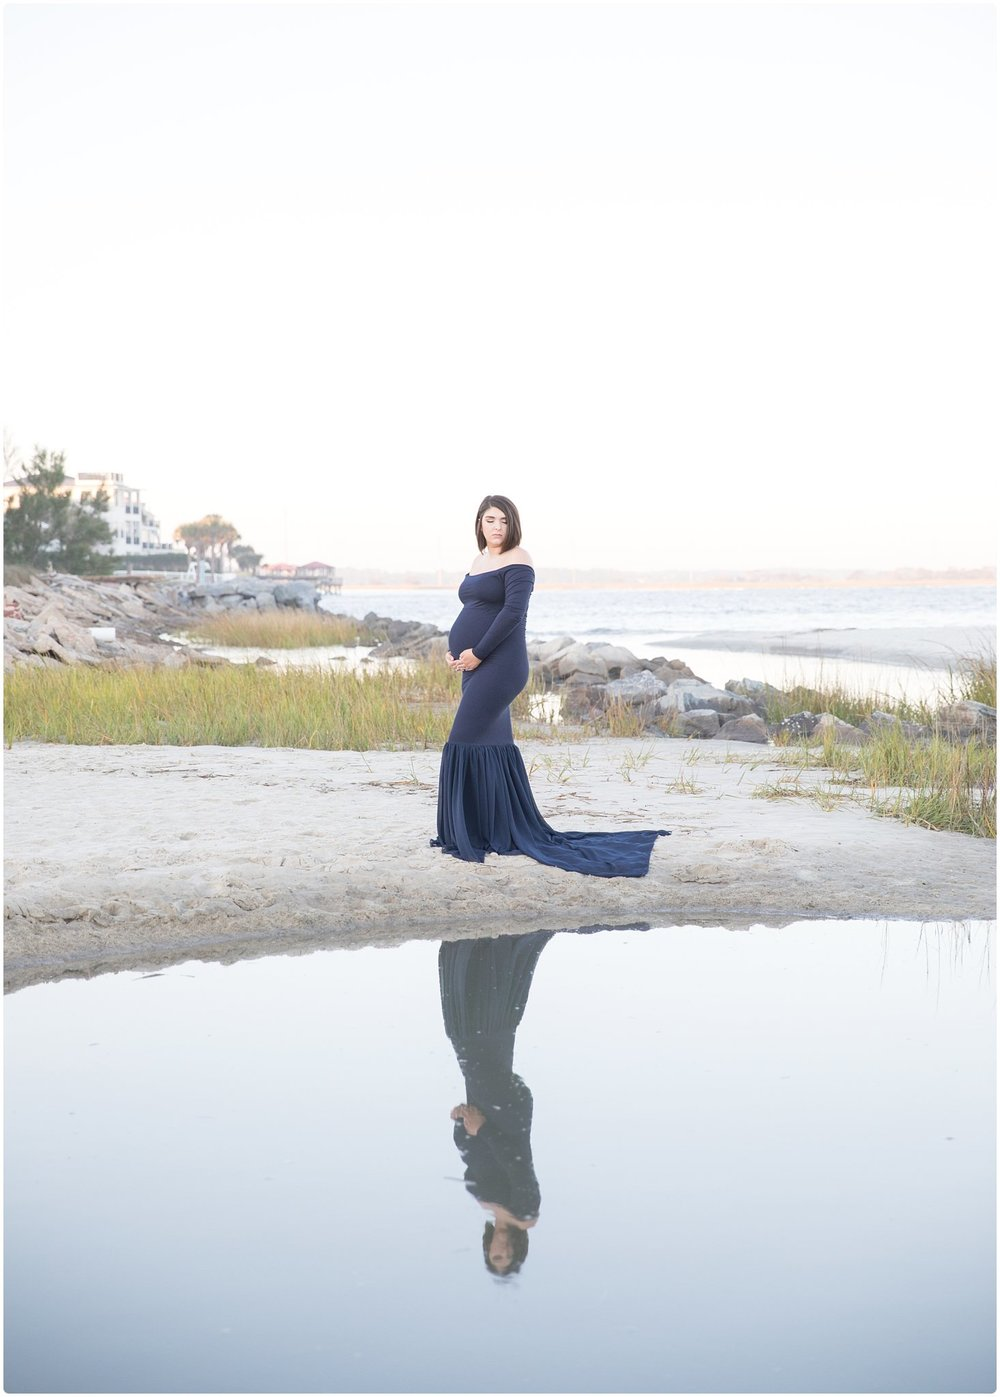 www.candacehiresphotography.com | candace hires photography | baxley photographer